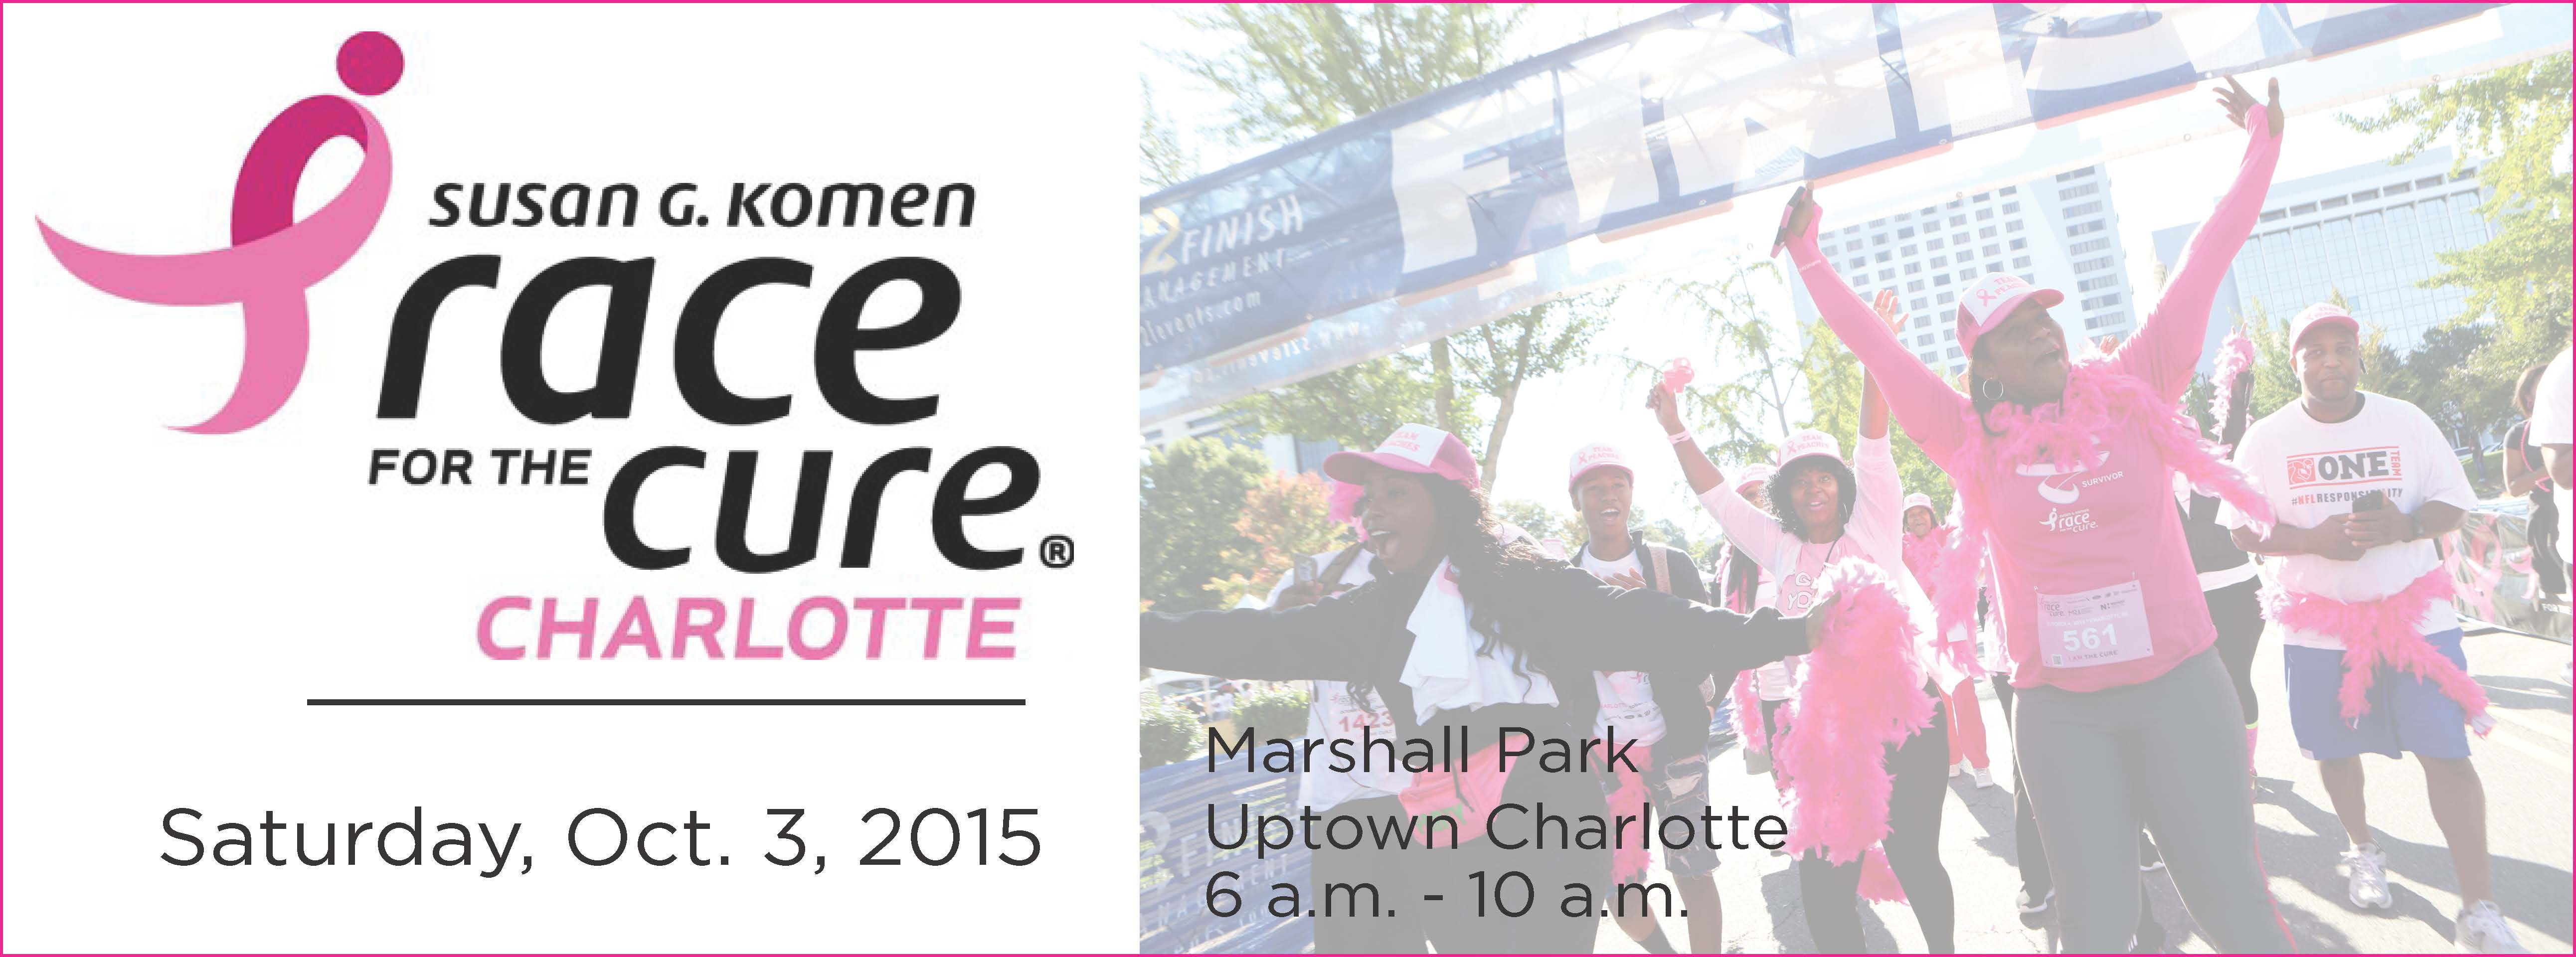 Race-for-the-Cure-2015-banner